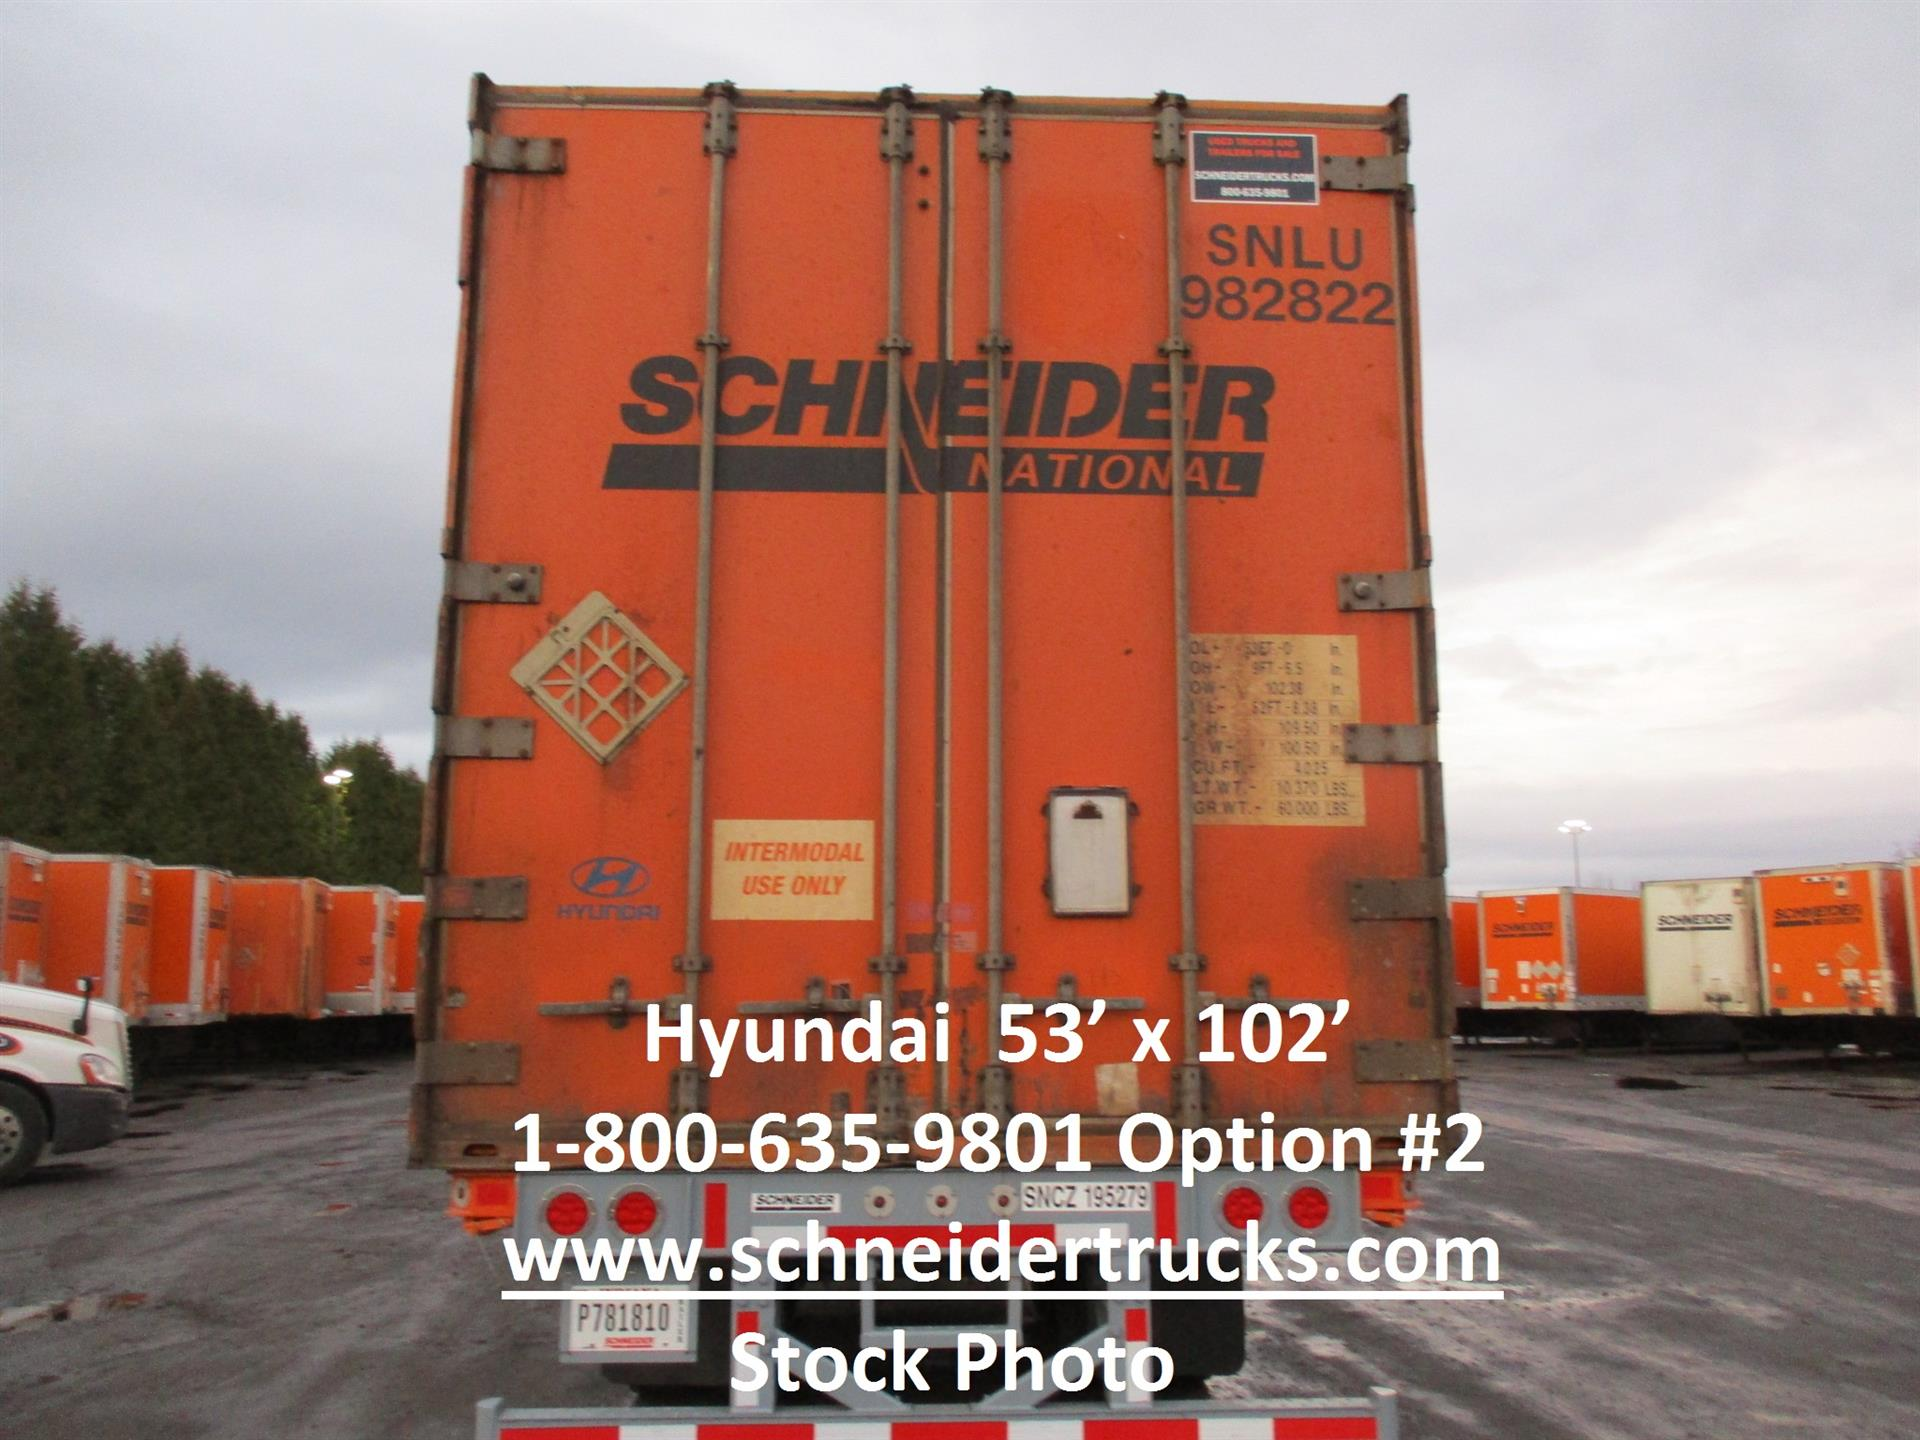 2006 Hyundai Container for sale-59283301